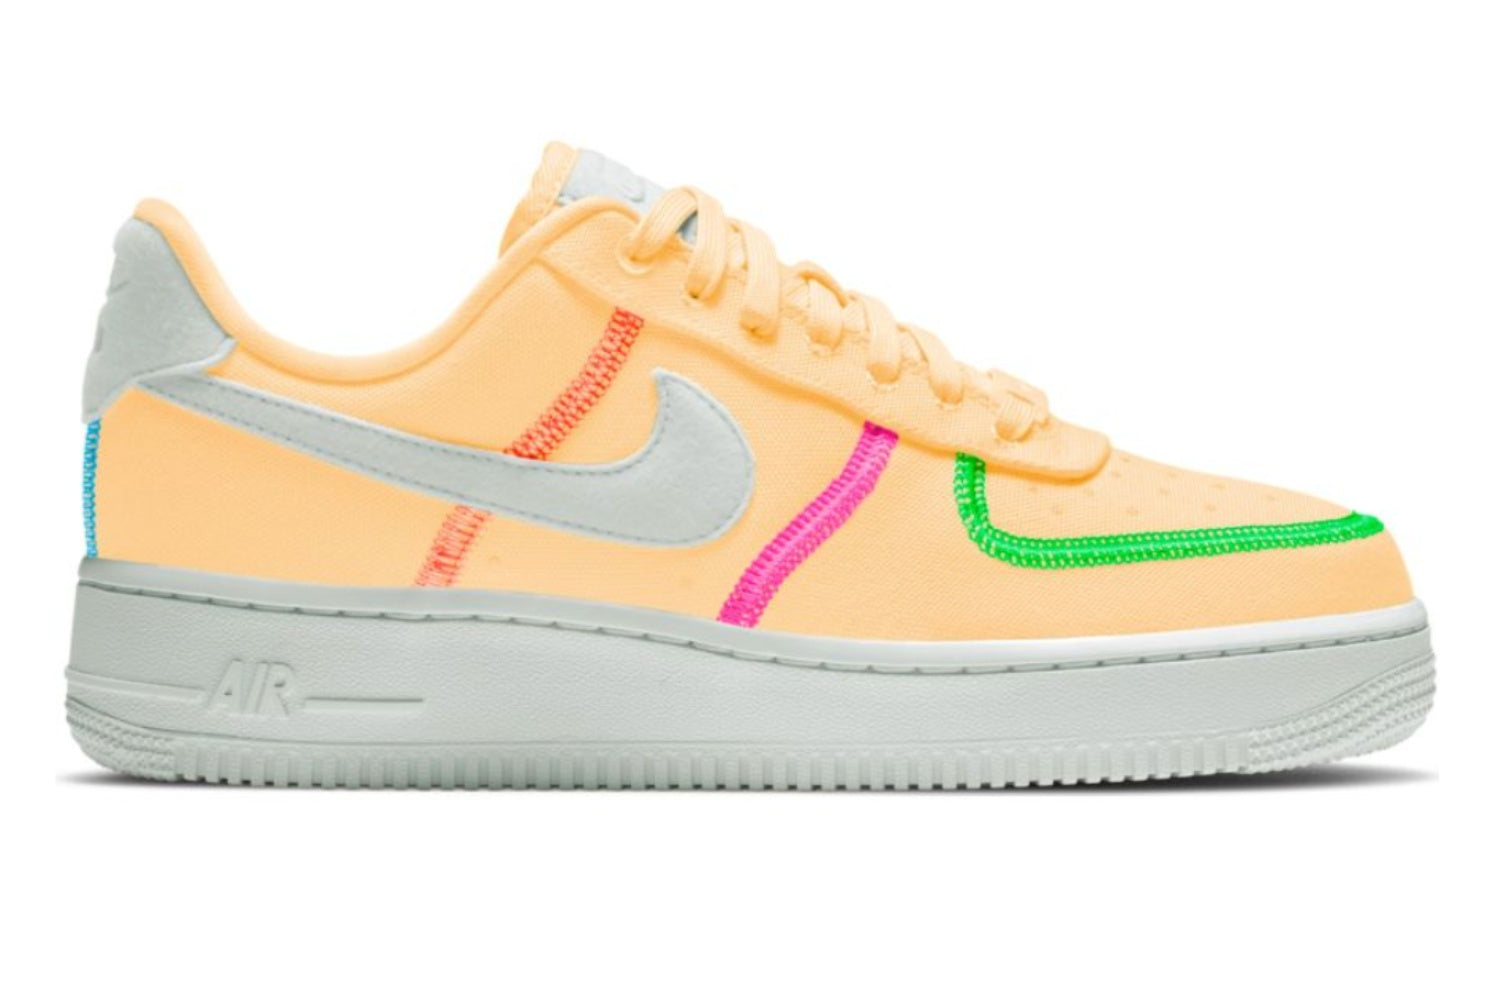 WMNS Air Force 1 '07 LX